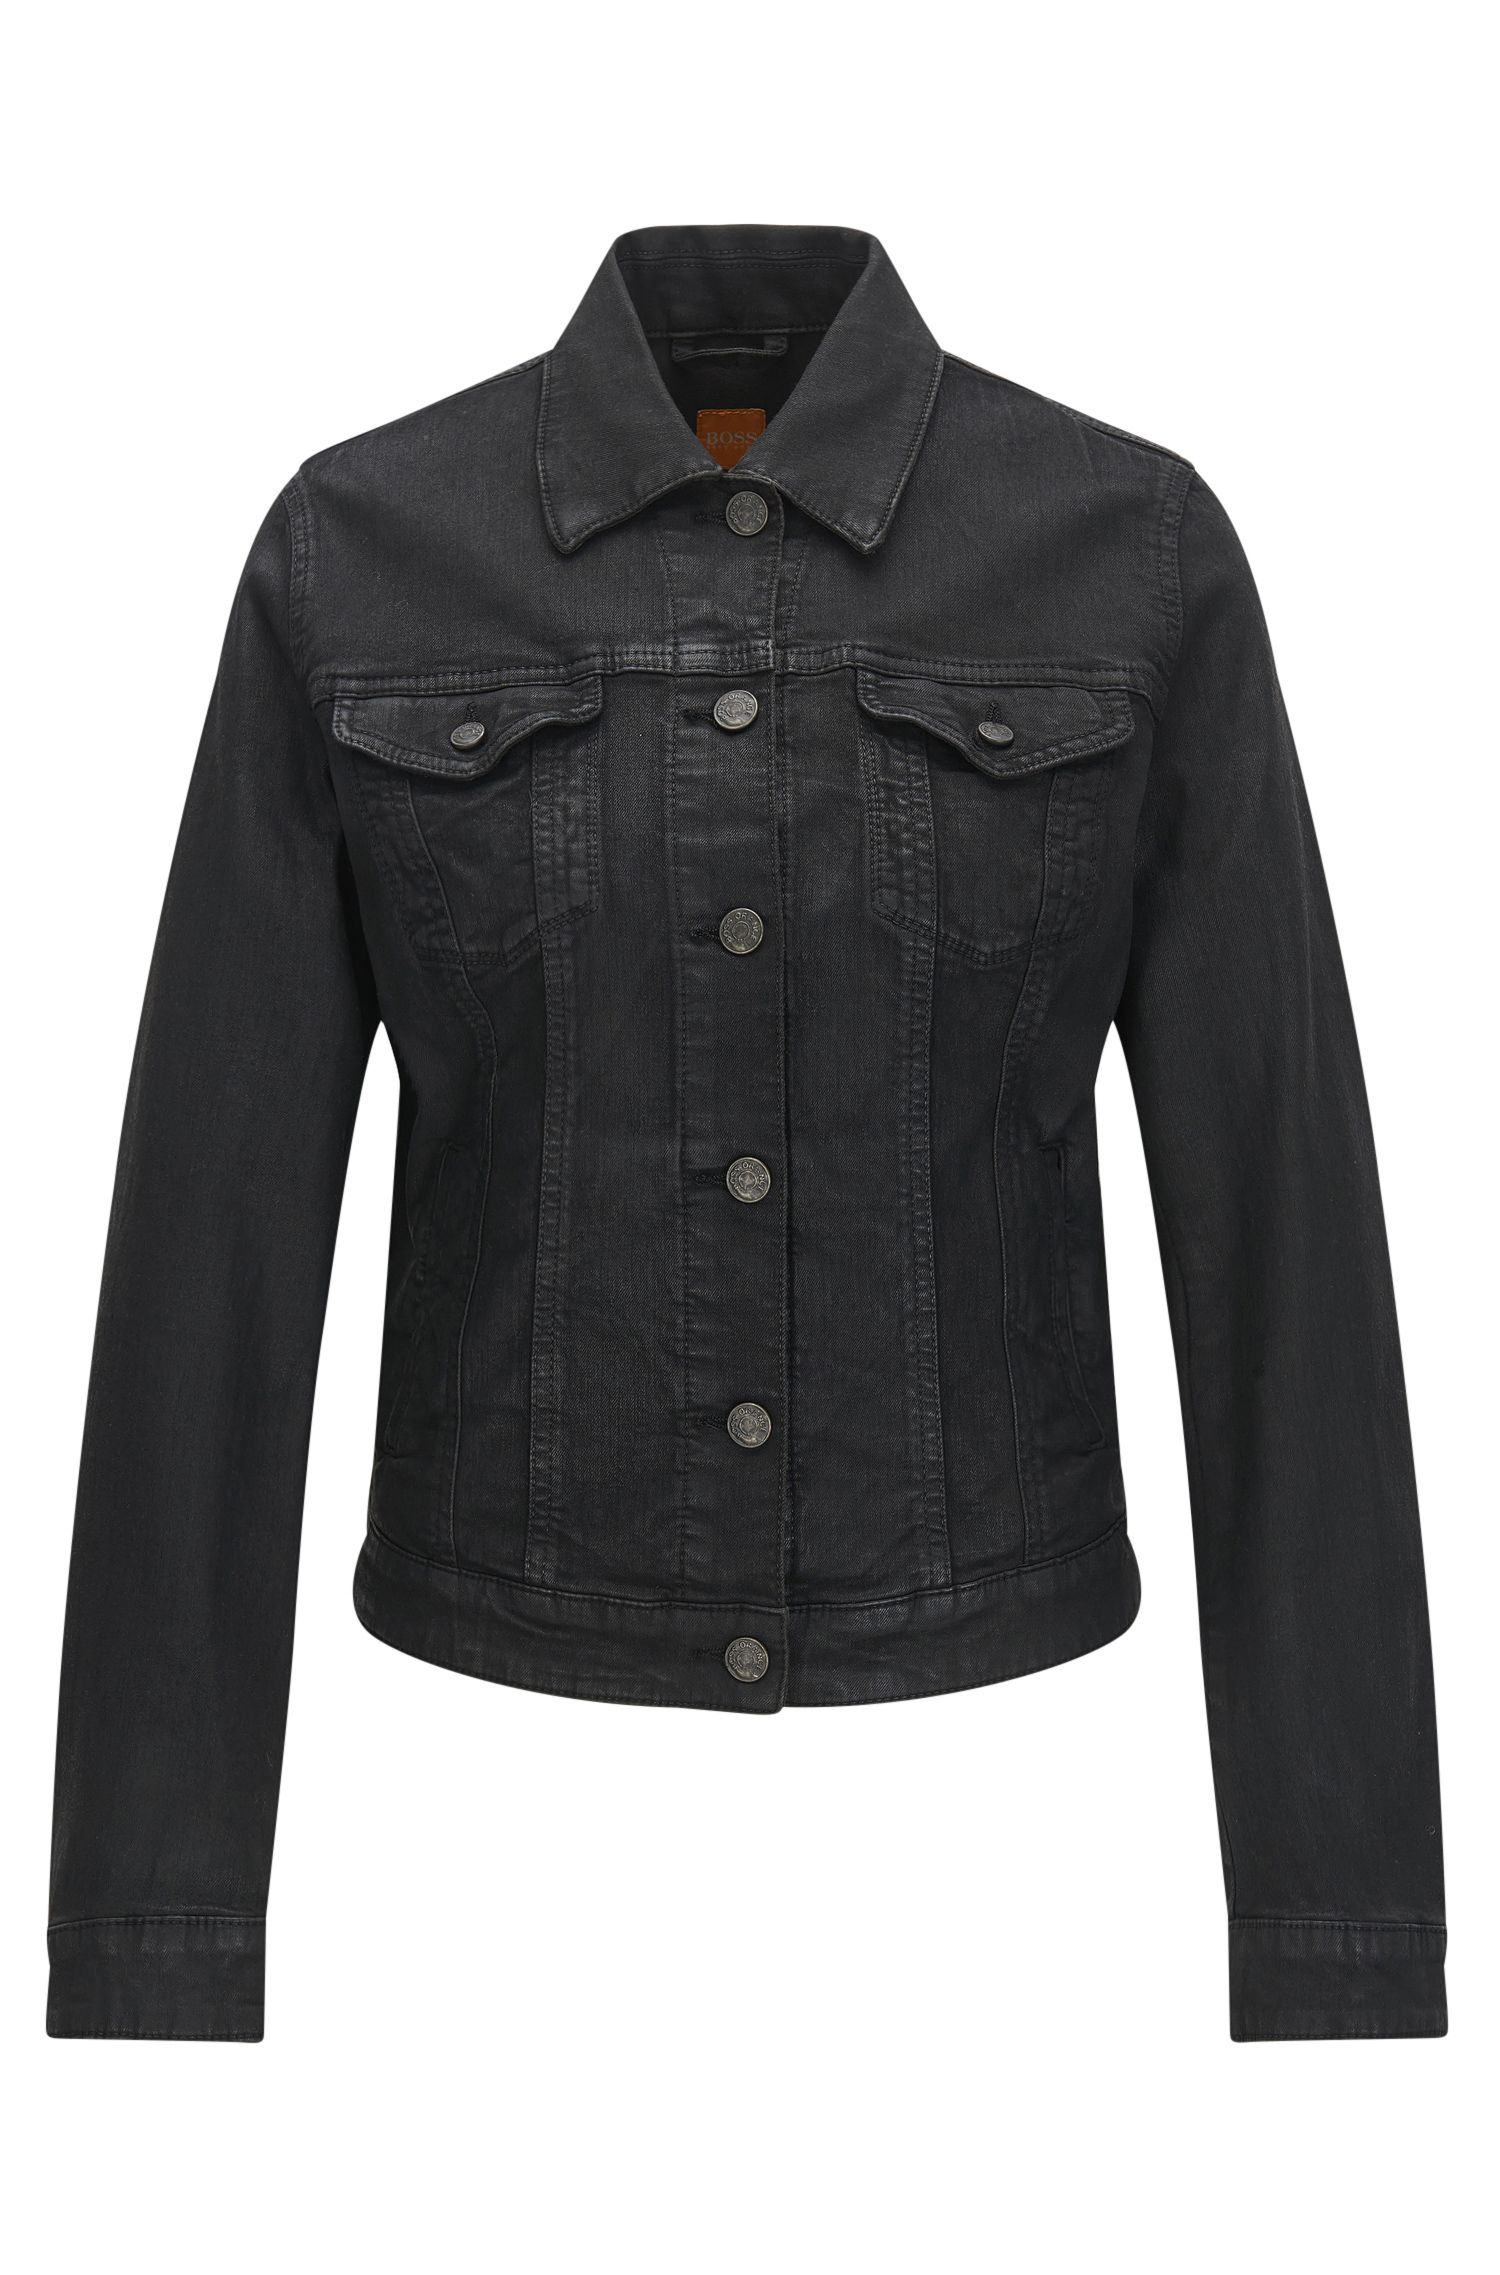 Giacca regular fit in denim elasticizzato nero con finitura lucente